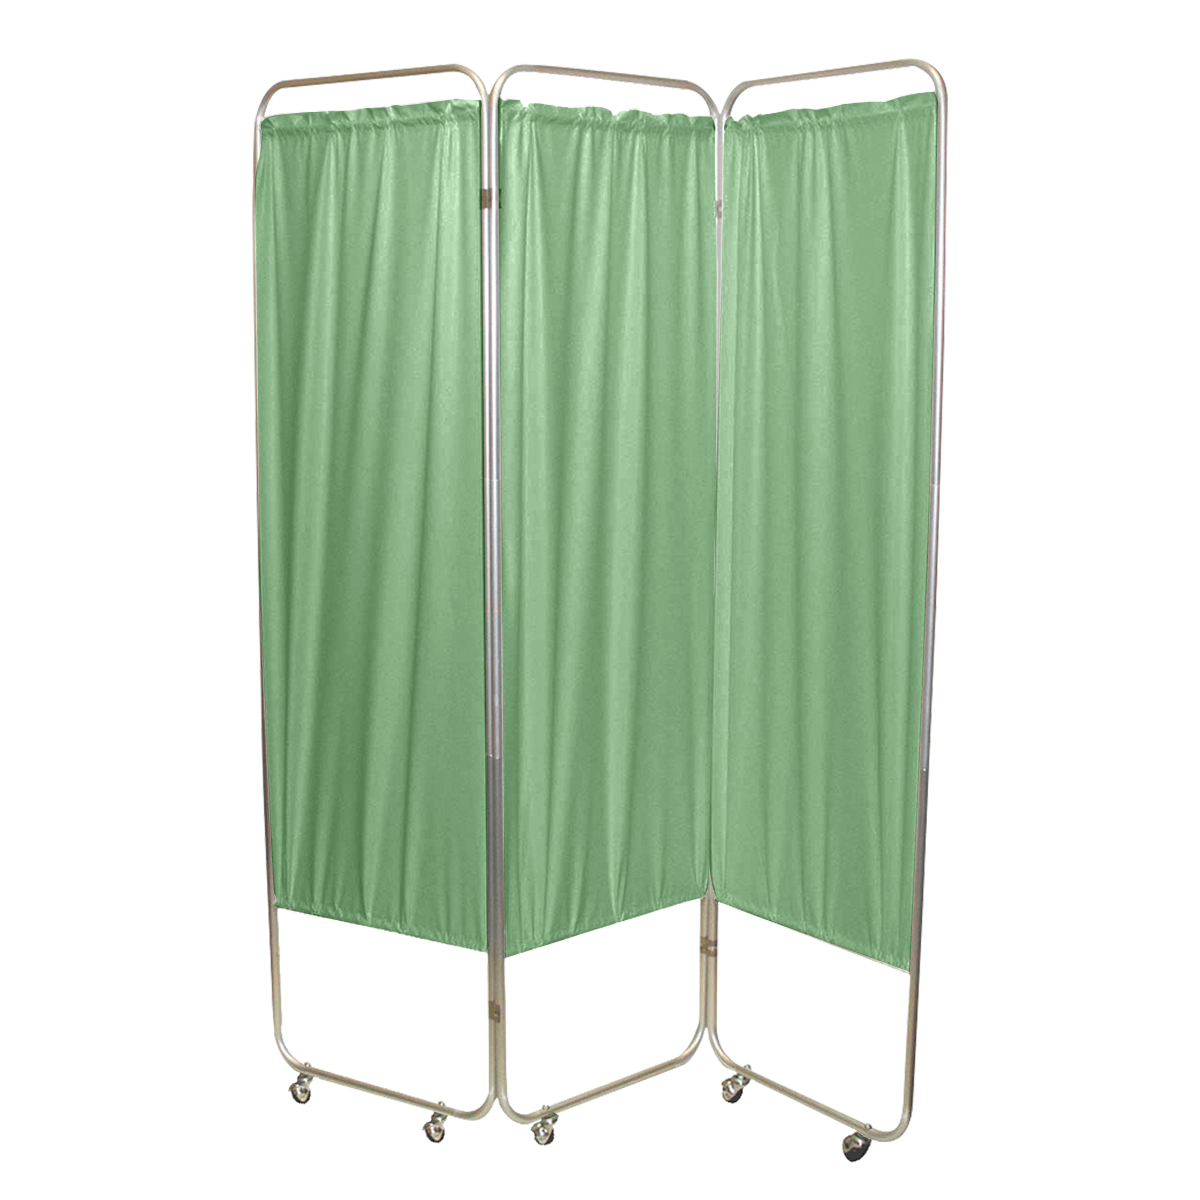 Standard Foldable Privacy Screen with Casters - Vinyl 3 pannel green